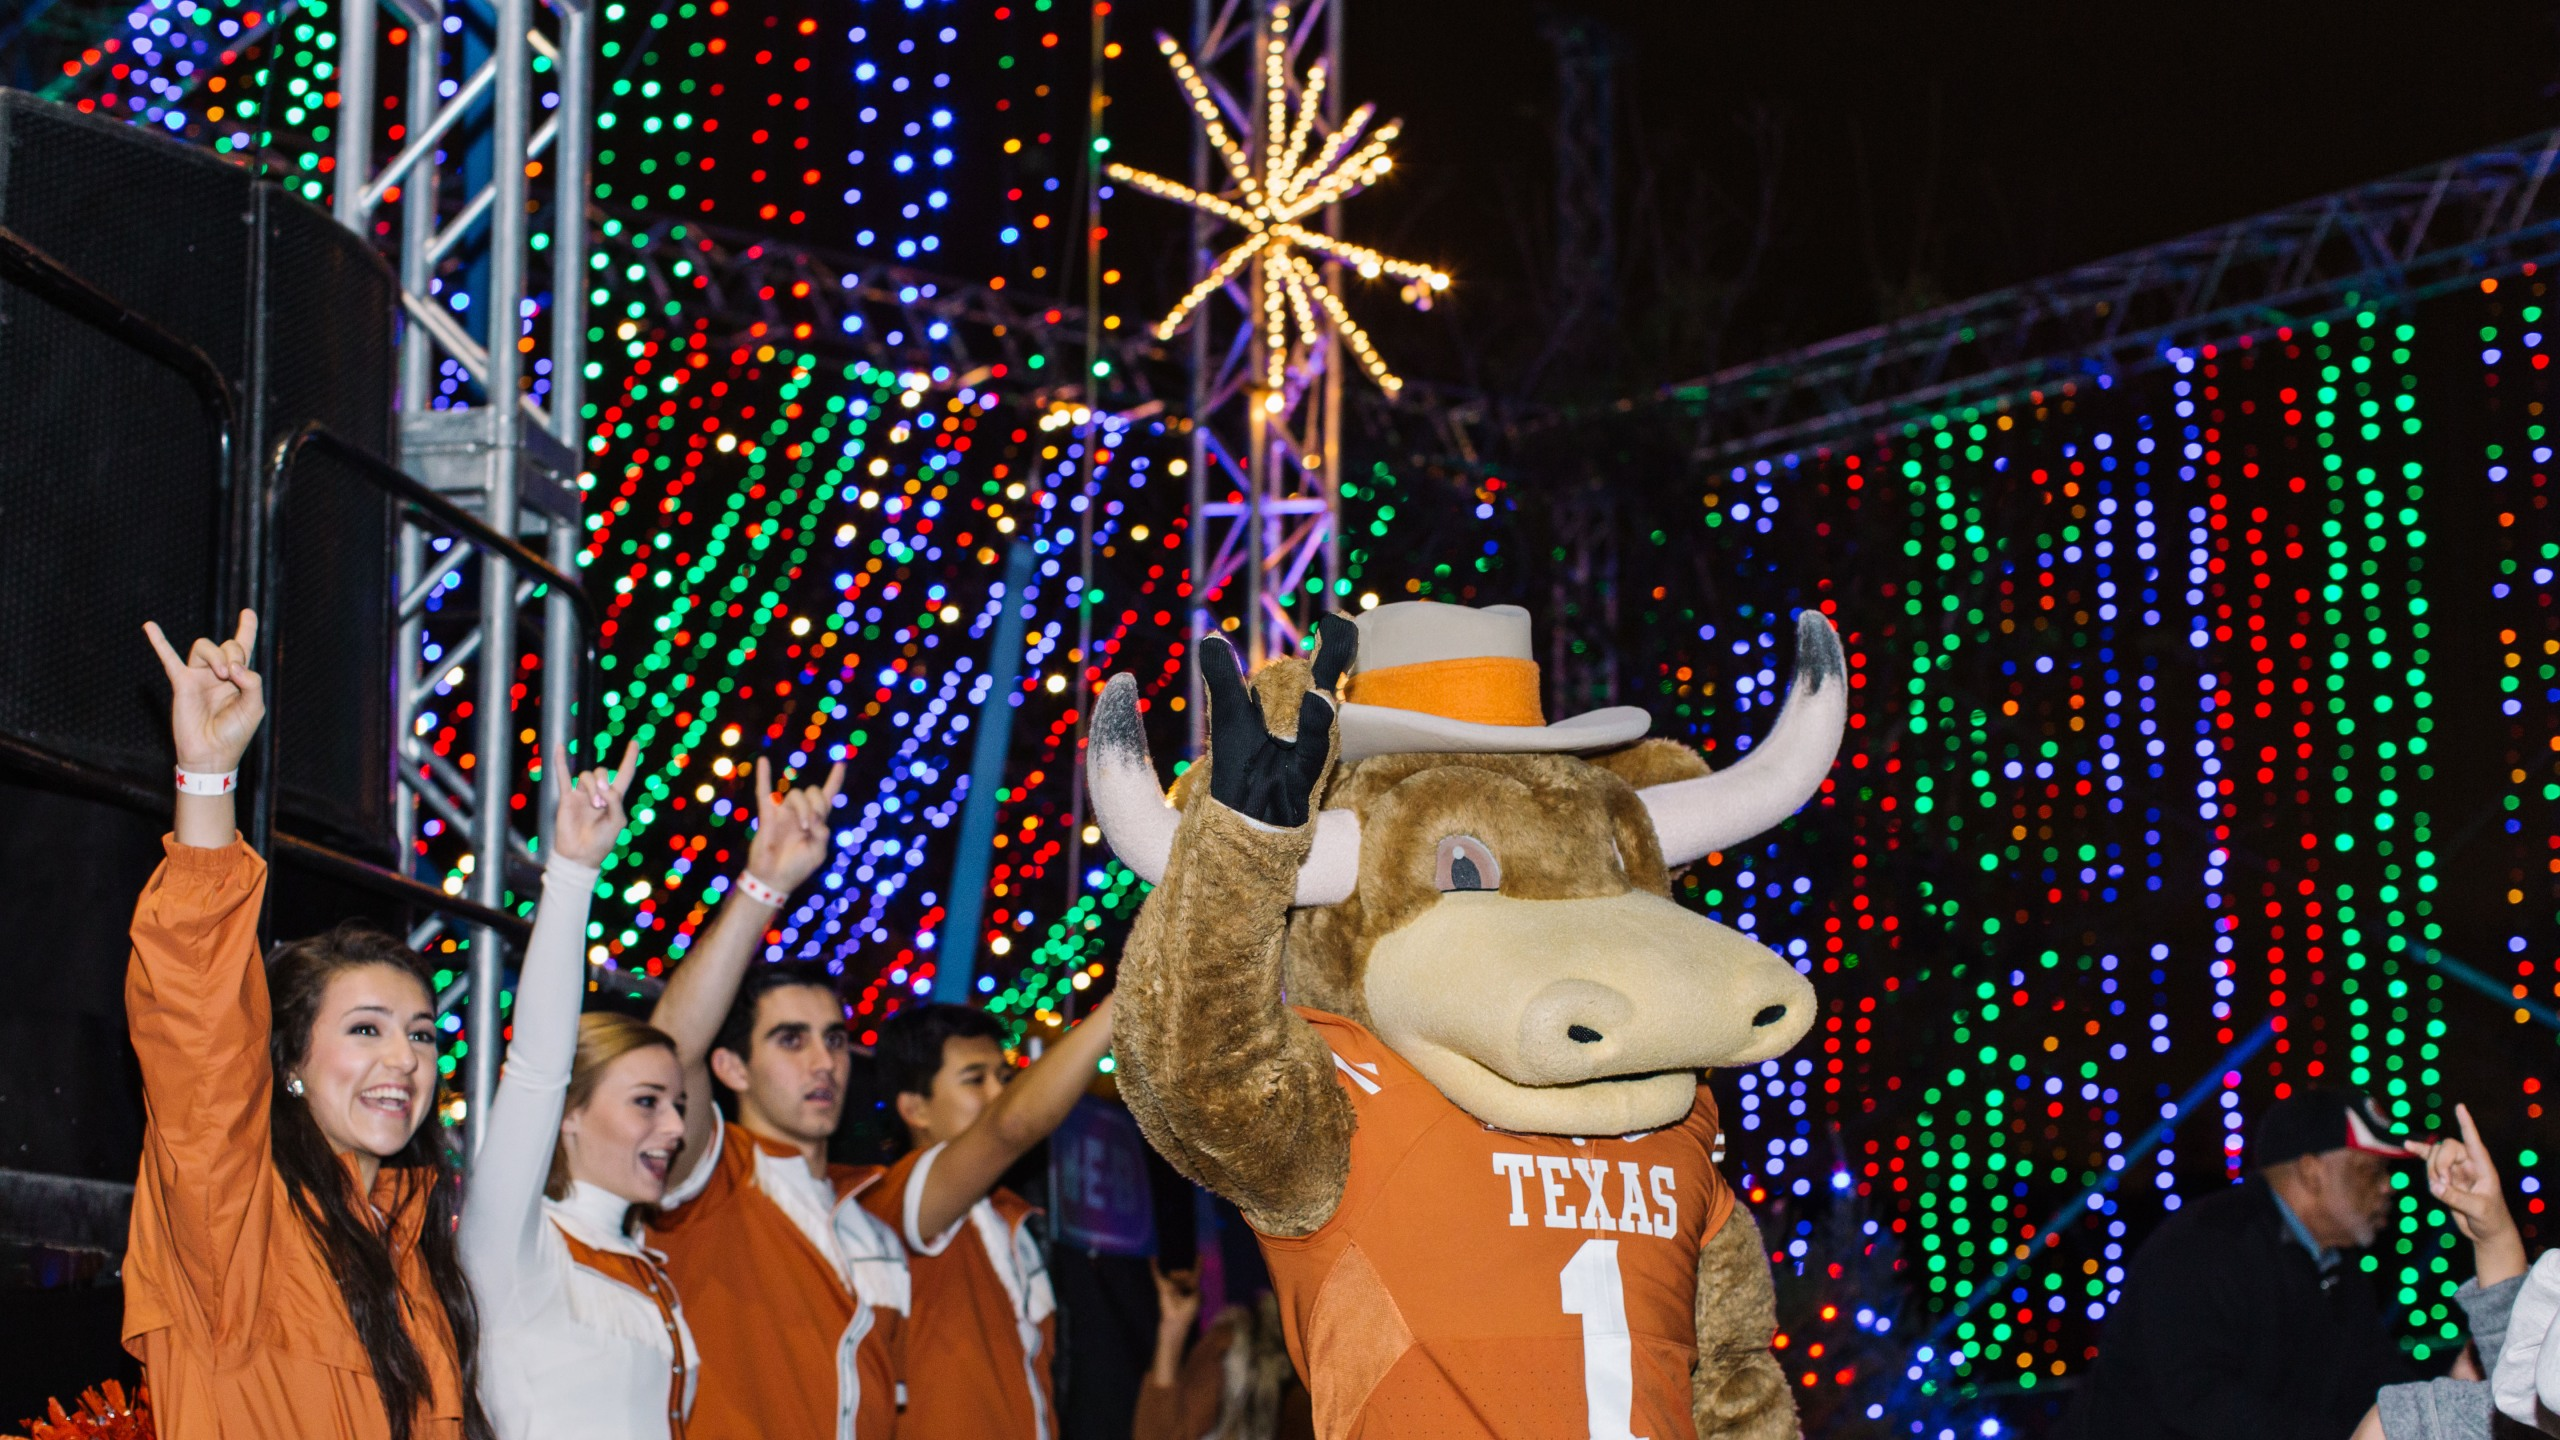 trail of lights longhorns_edited-2_1543870368229.jpg.jpg